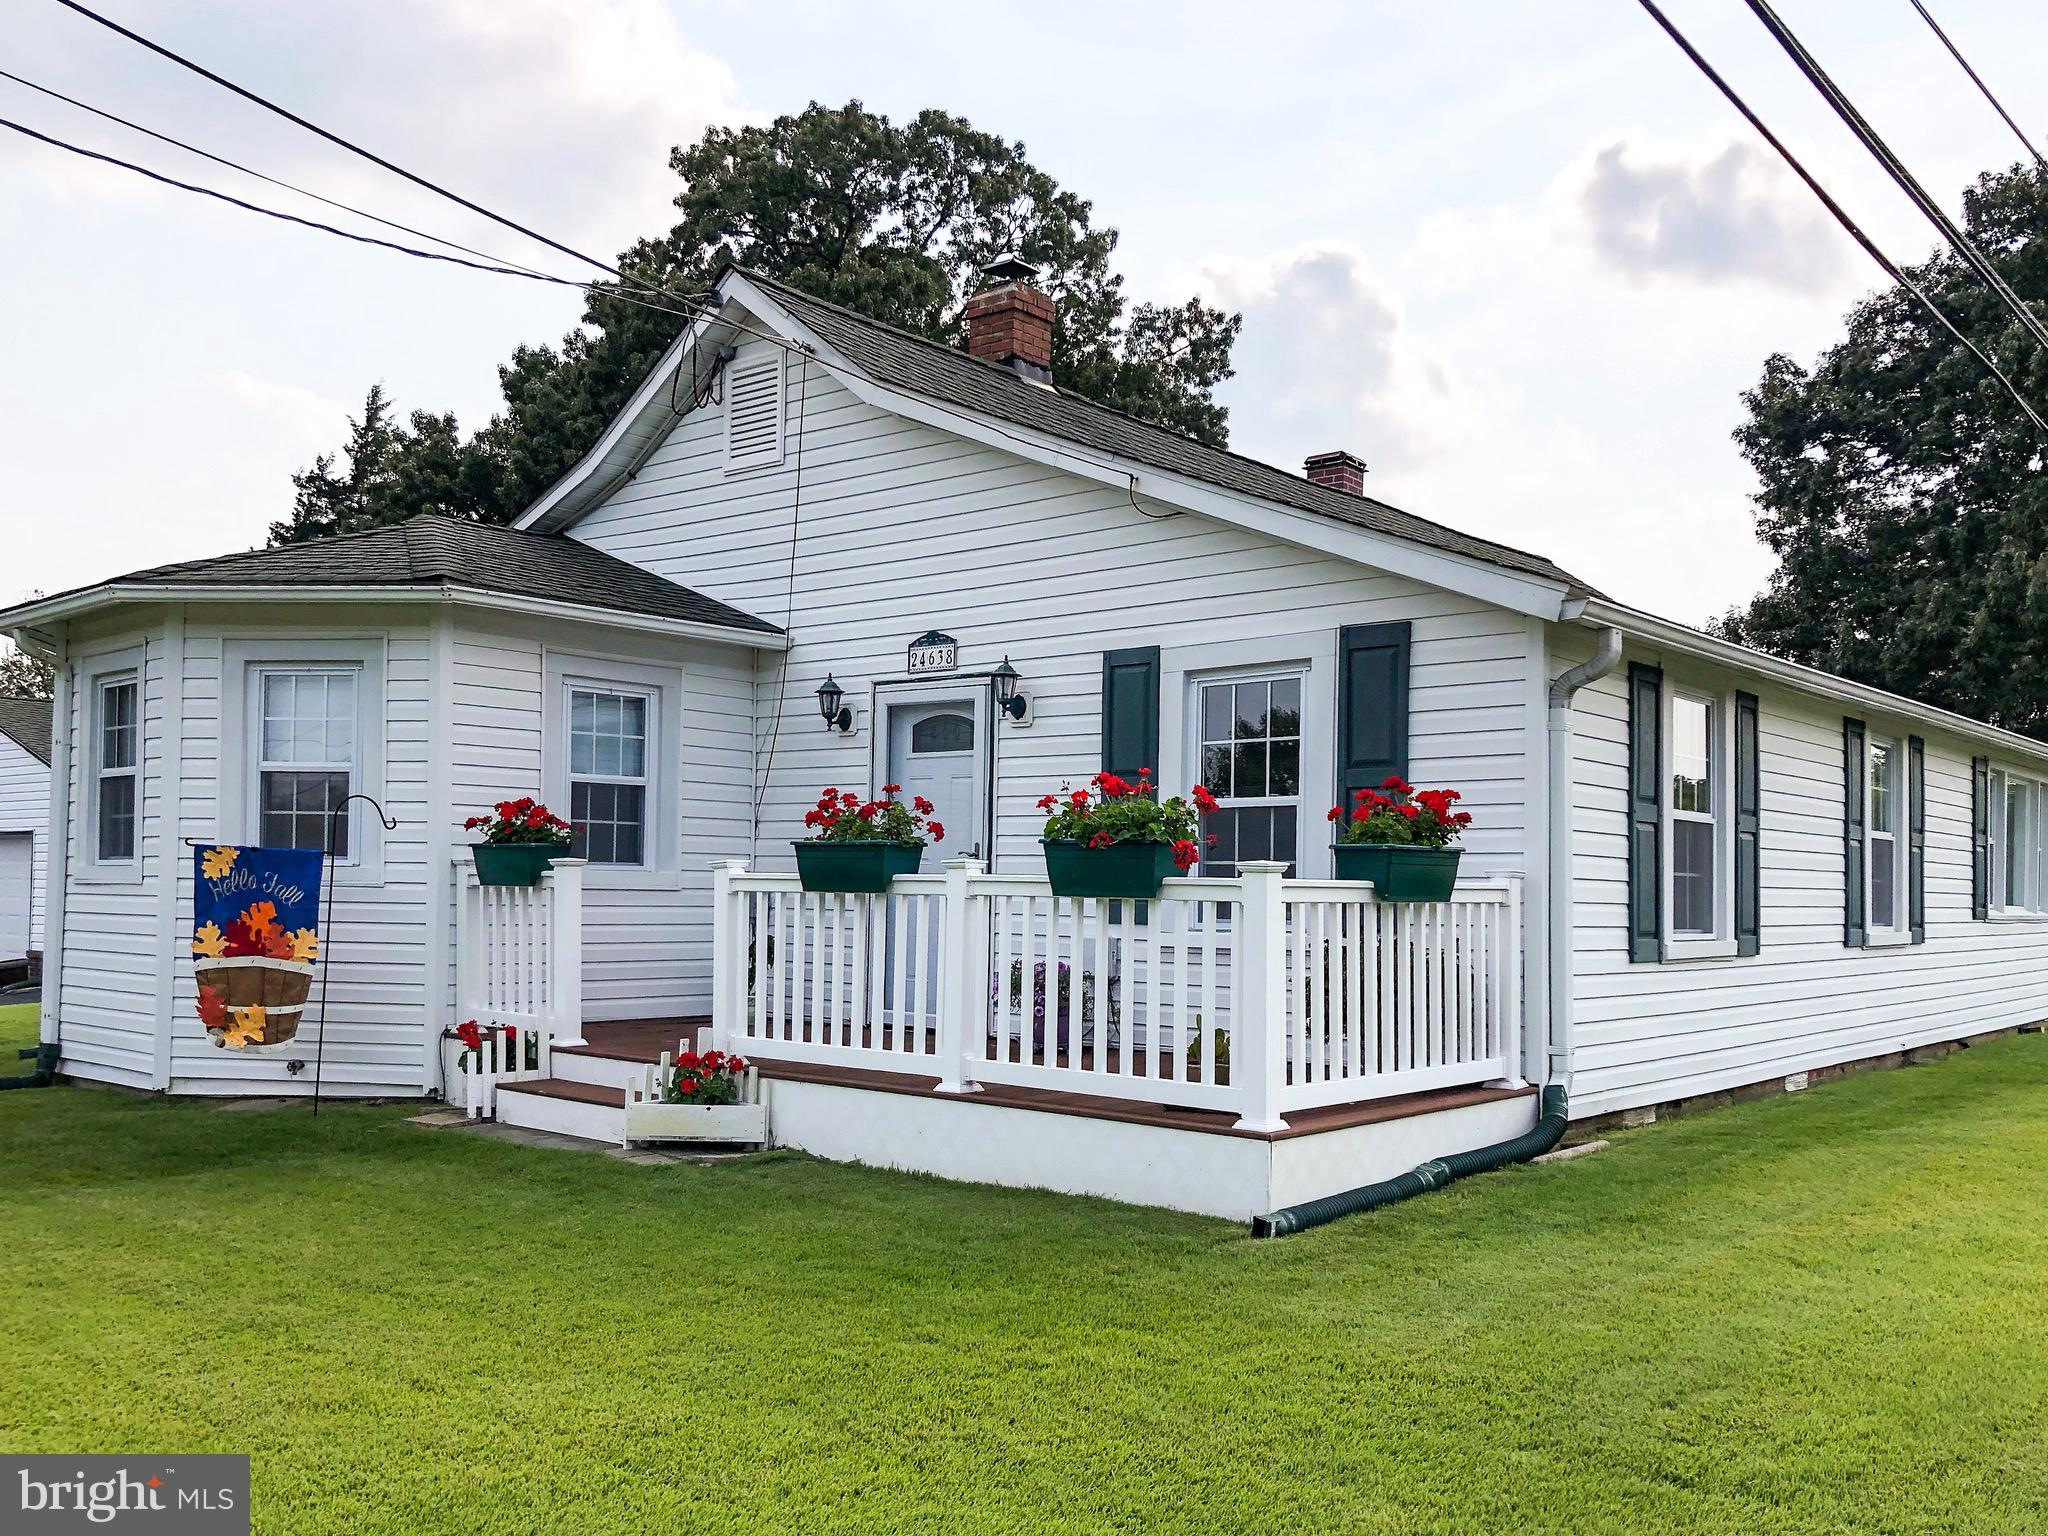 This impeccably maintained 3 bedroom, 1.5 bath home is located in Hollywood, MD, conveniently betwee